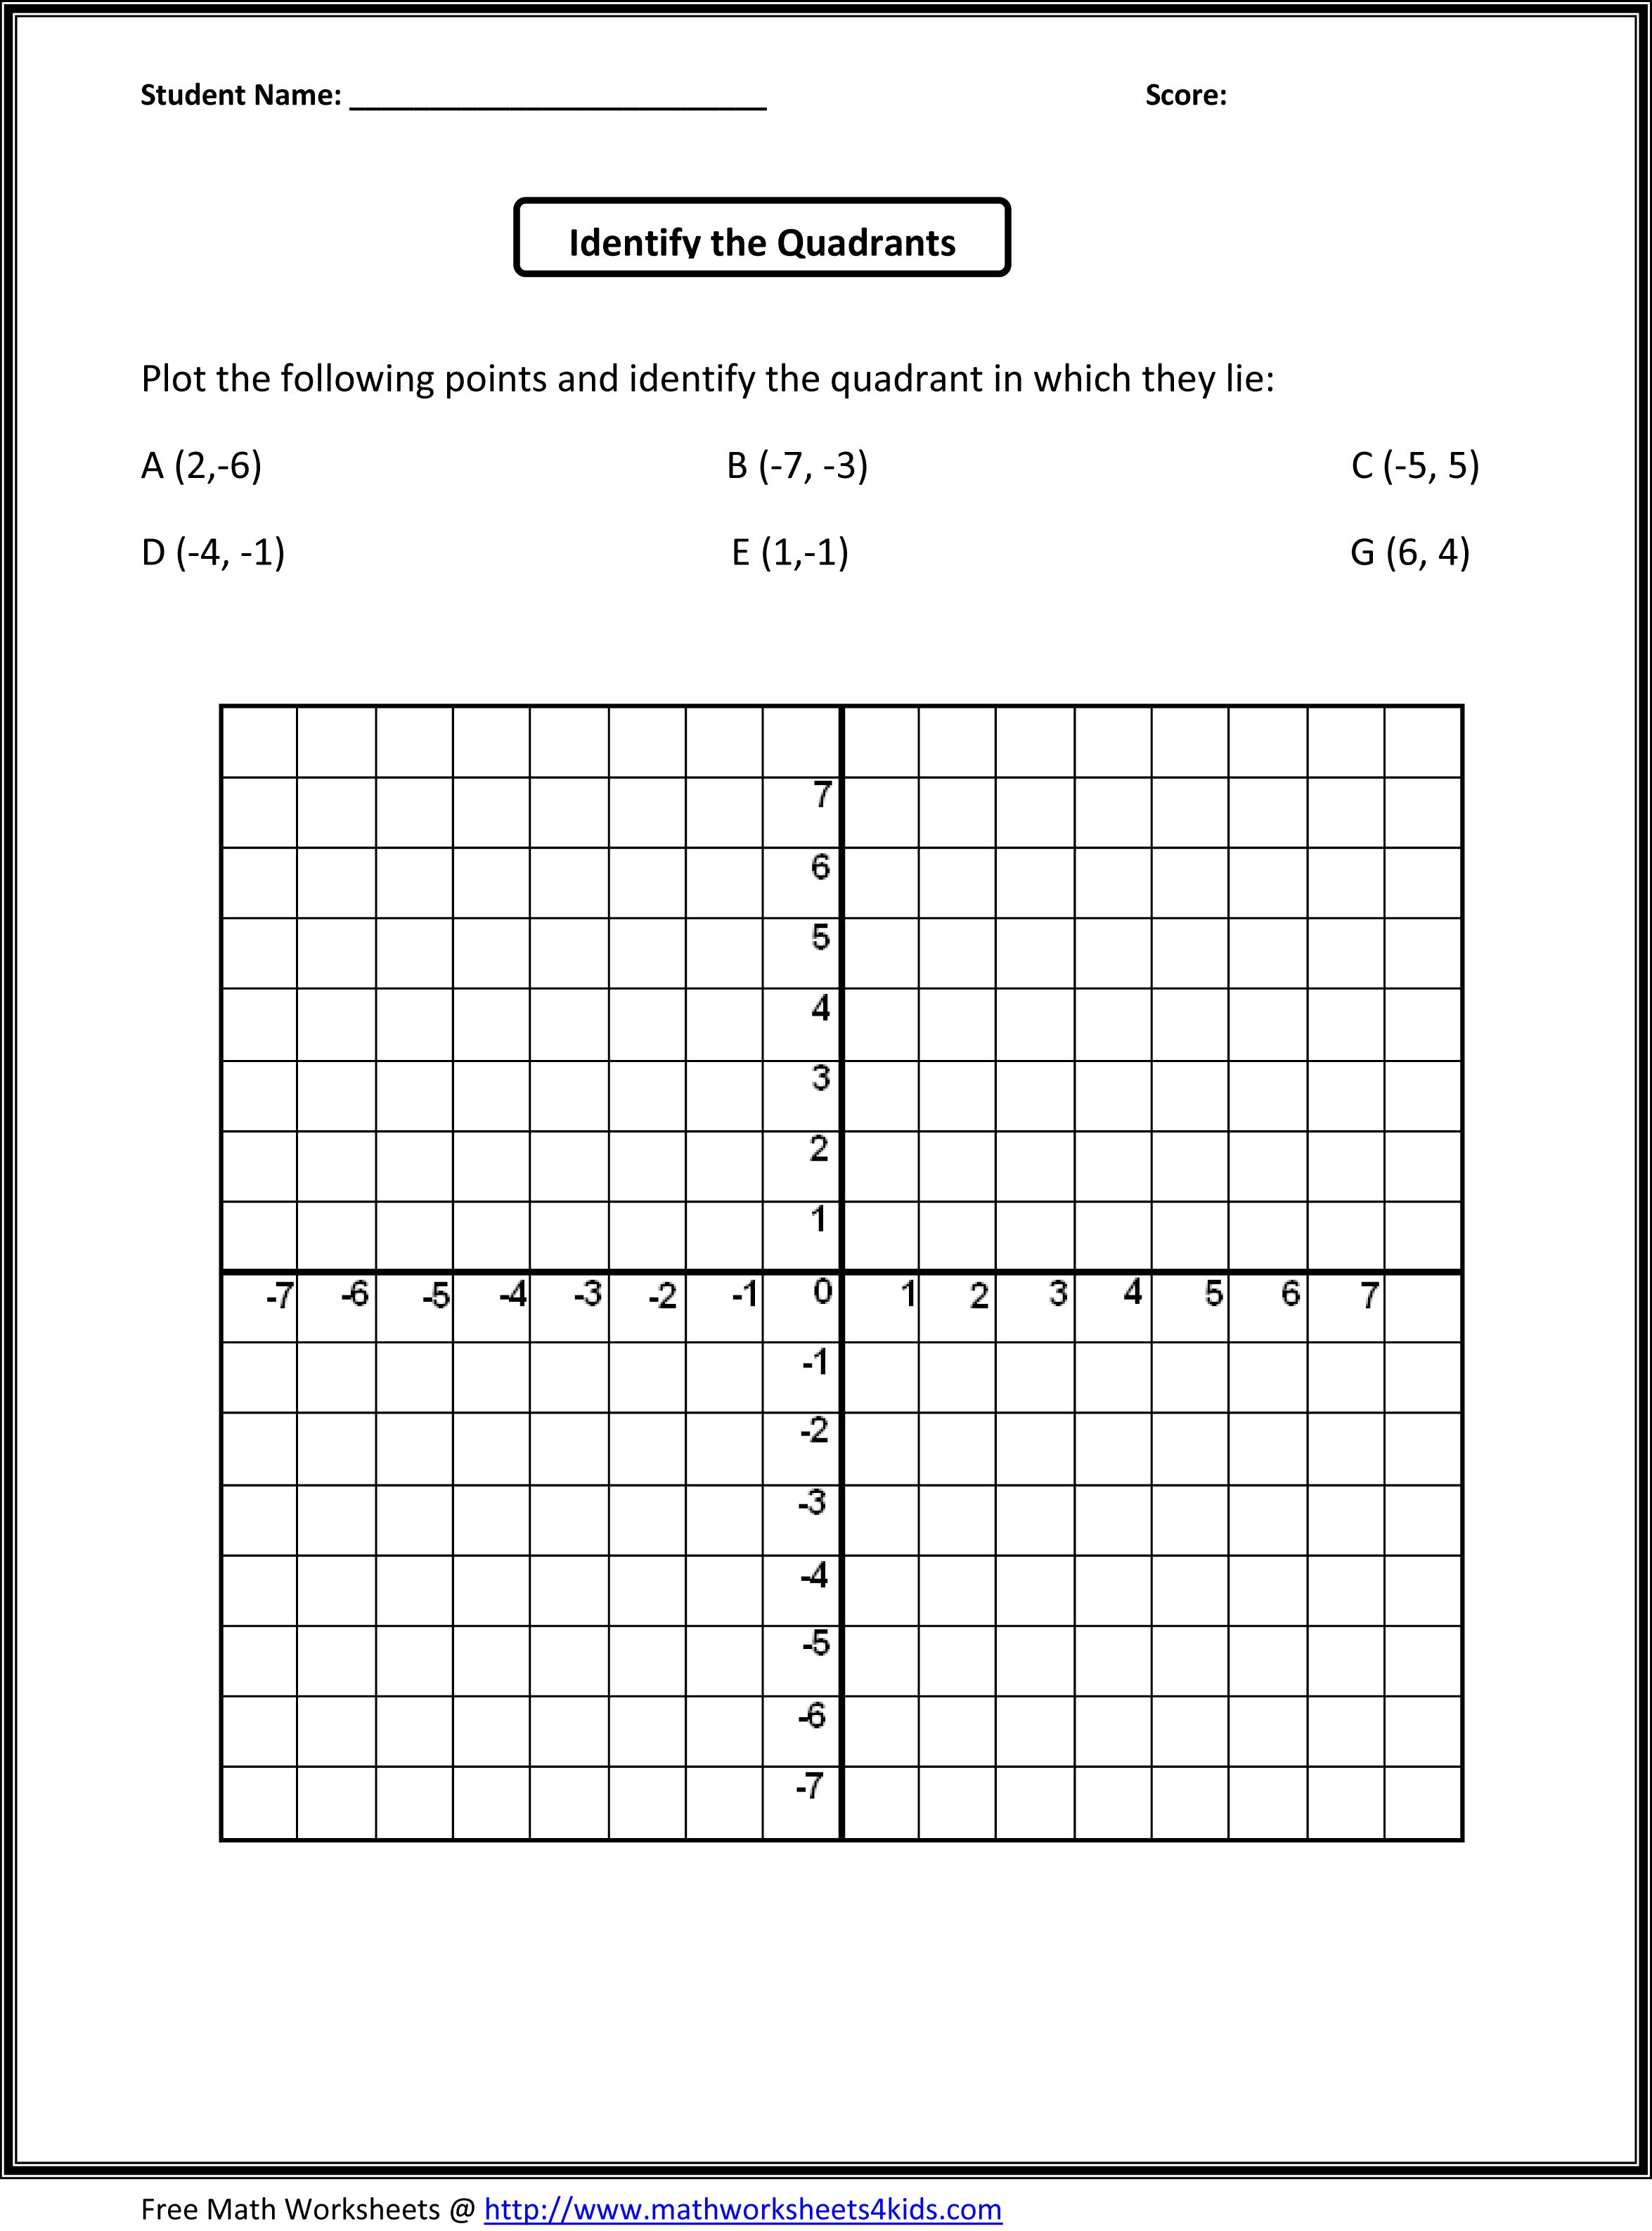 School Worksheets 5th Grade : Th grade math worksheet school pinterest